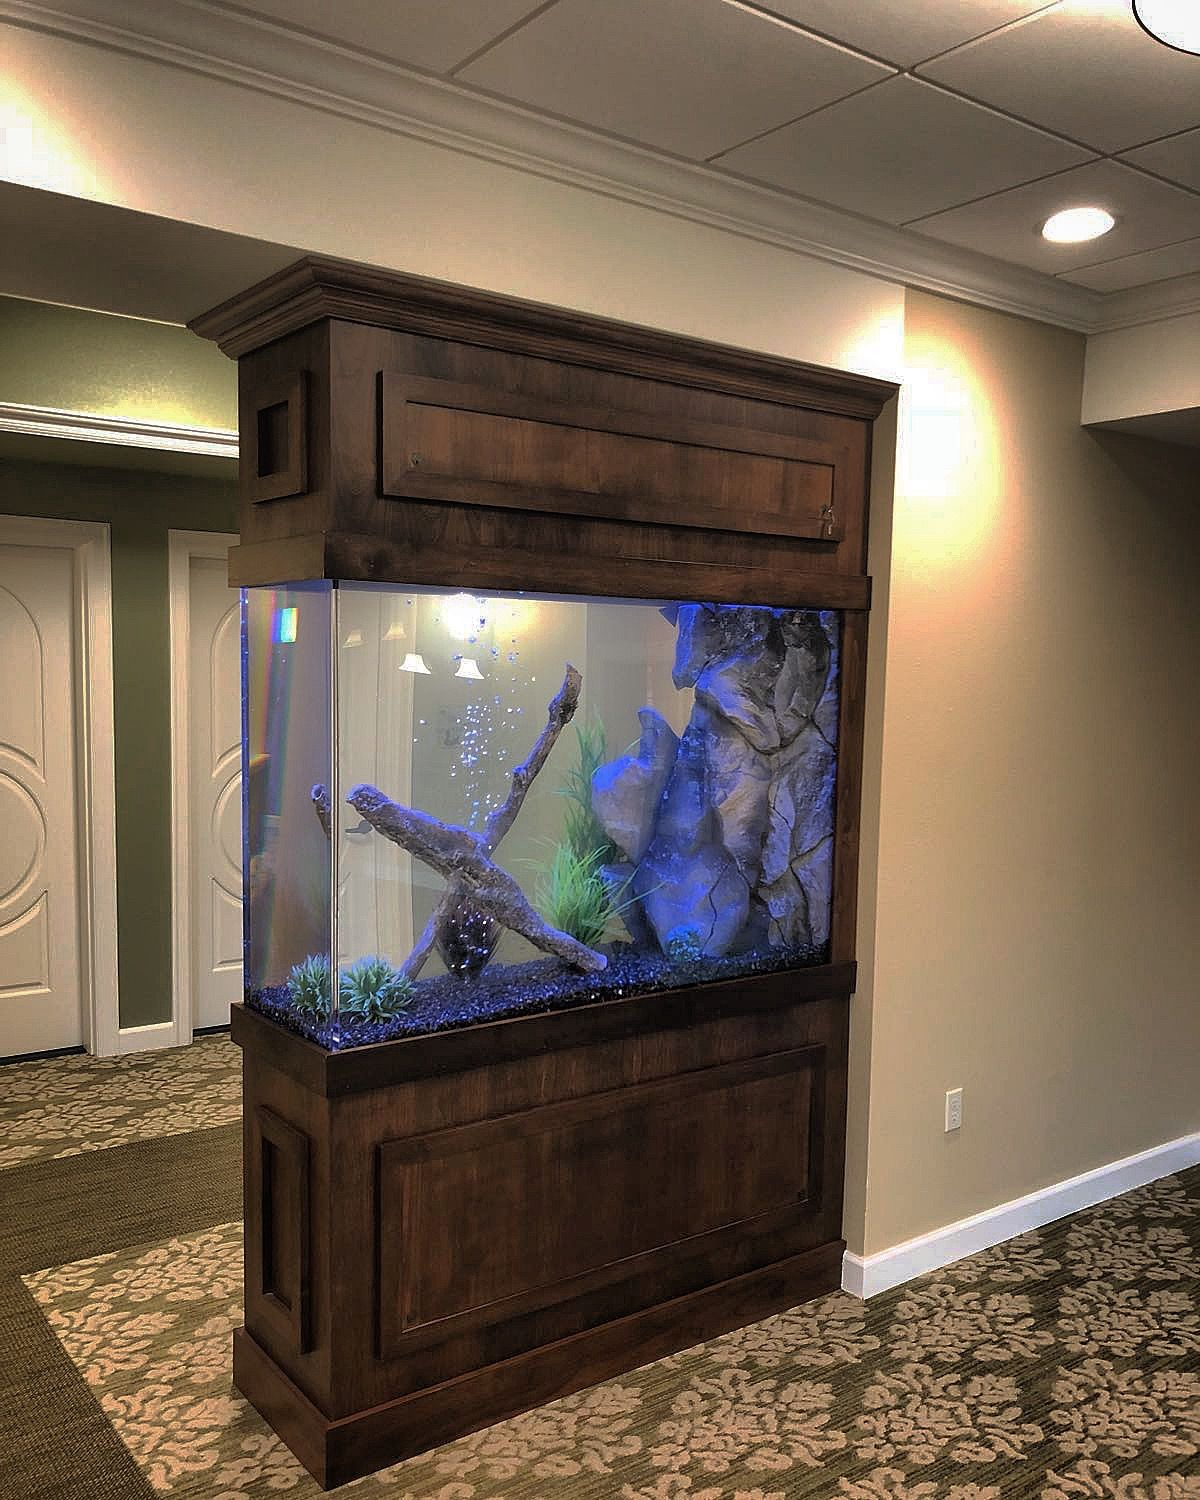 Aquarium Living Room Decor: Pin By Aquadecor On Aquadecor Aquariums In 2019